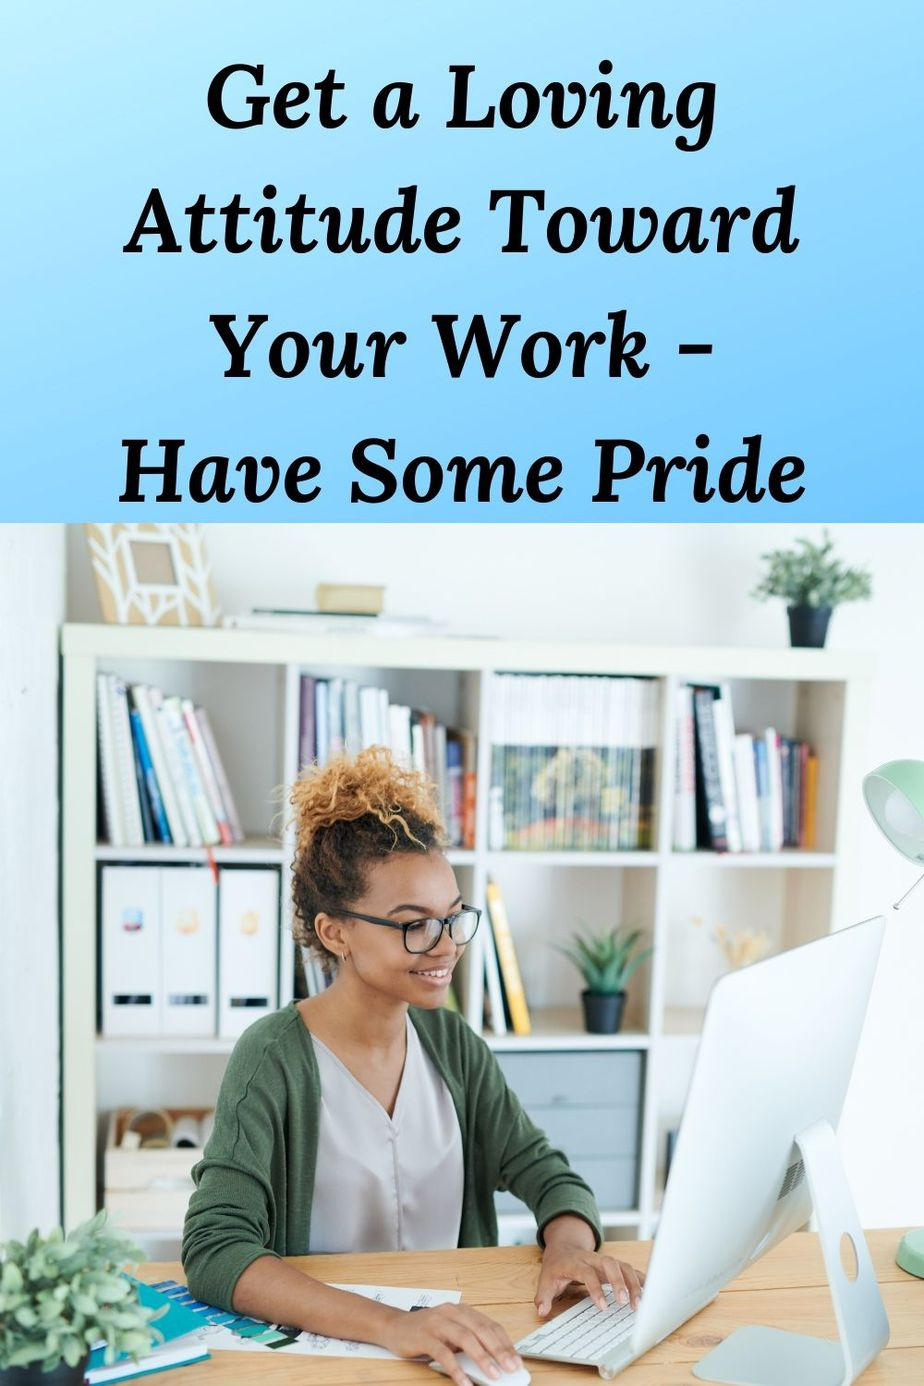 Get a Loving Attitude Toward Your Work – Have Some Pride